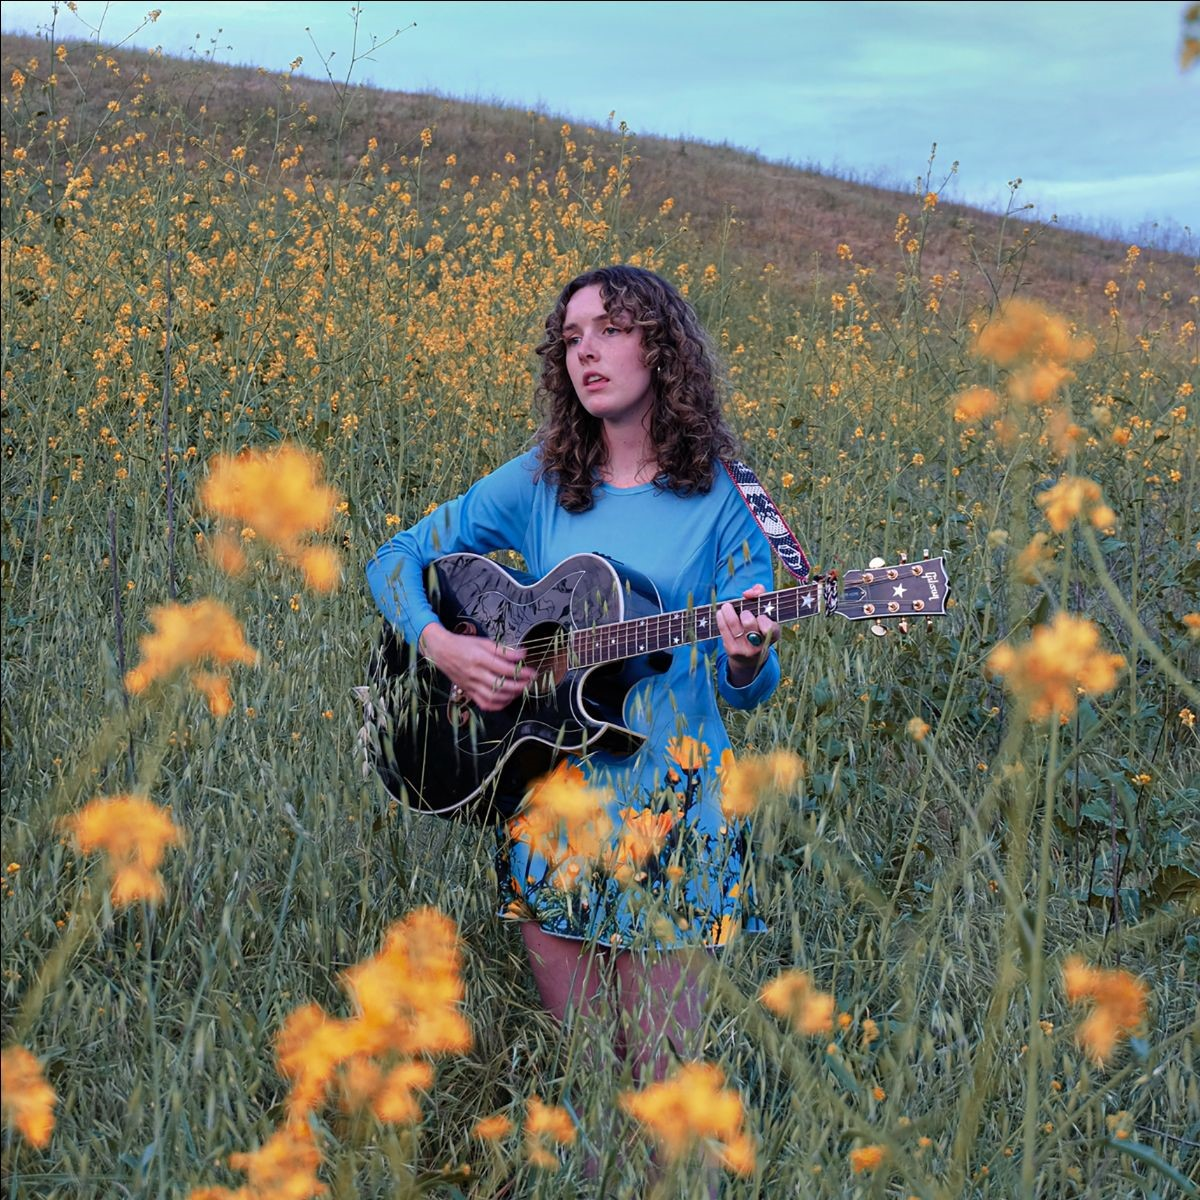 Julia Logans debut single To Be True blossoms like a new morning, sunlight reflecting off its rhythmic angles and tones, vividly illuminating everything within a hundred yards. Listen: bit.ly/2Zssdpz